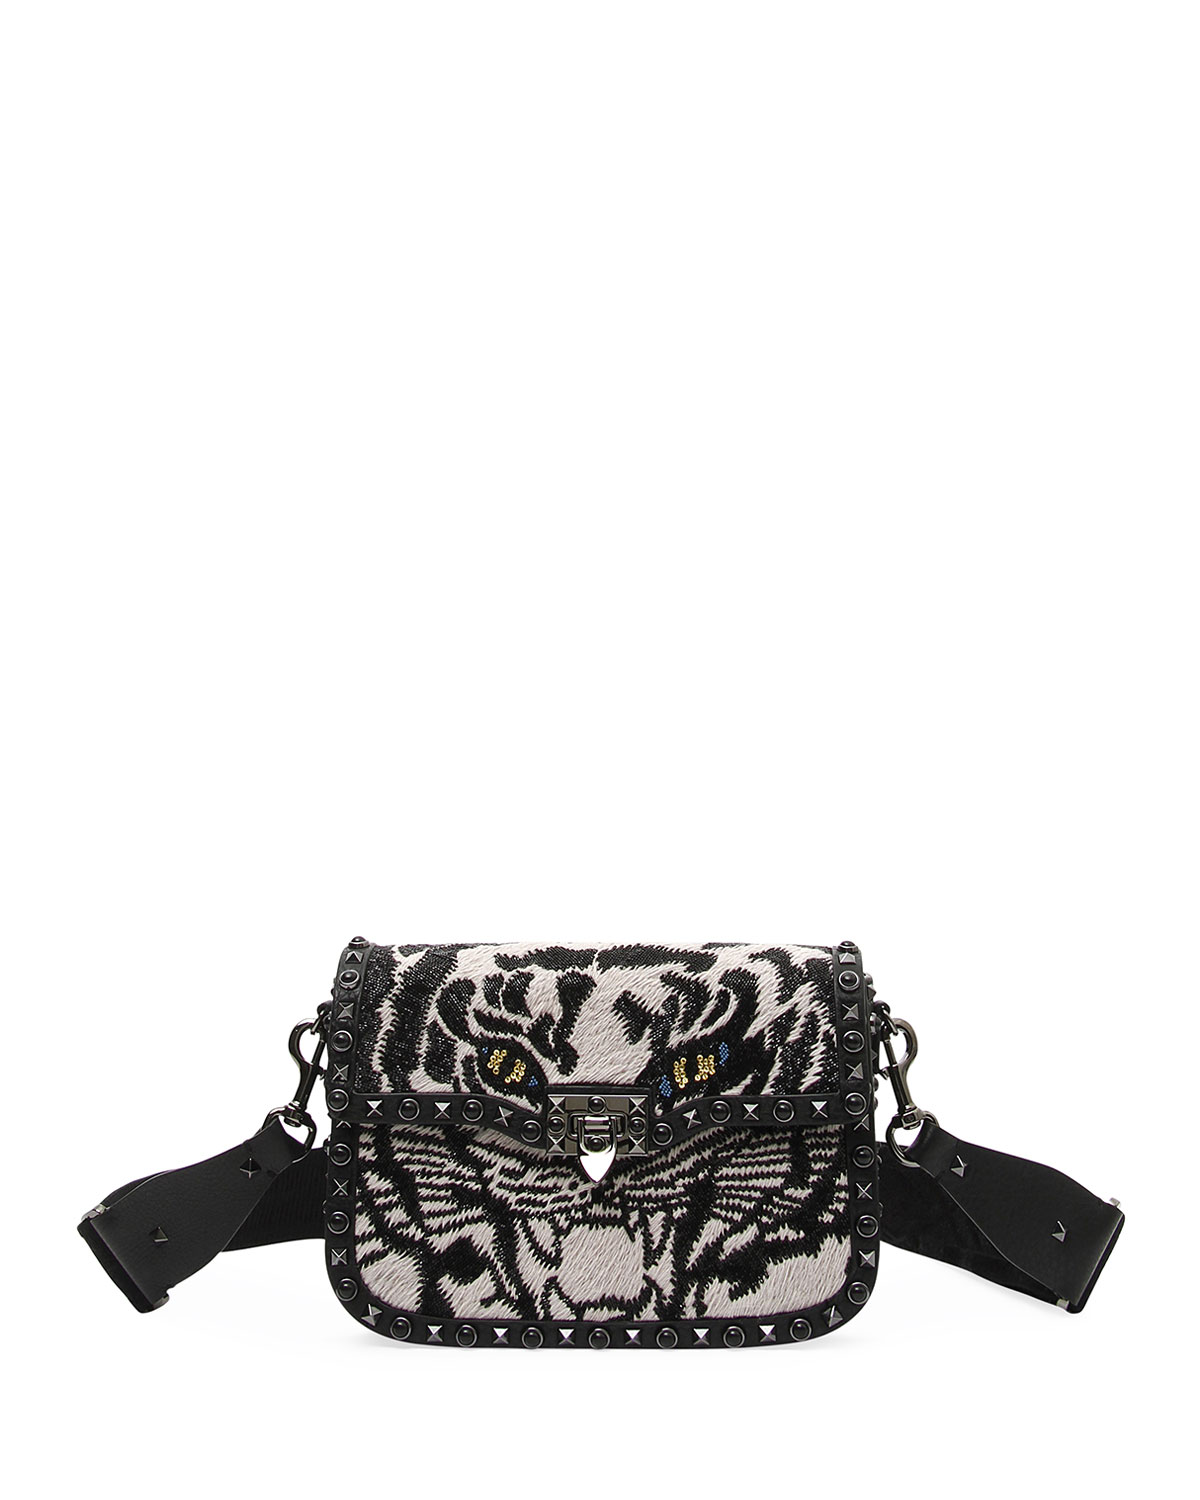 GUITAR ROCKSTUD ROLLING NOIR TIGER SHOULDER BAG